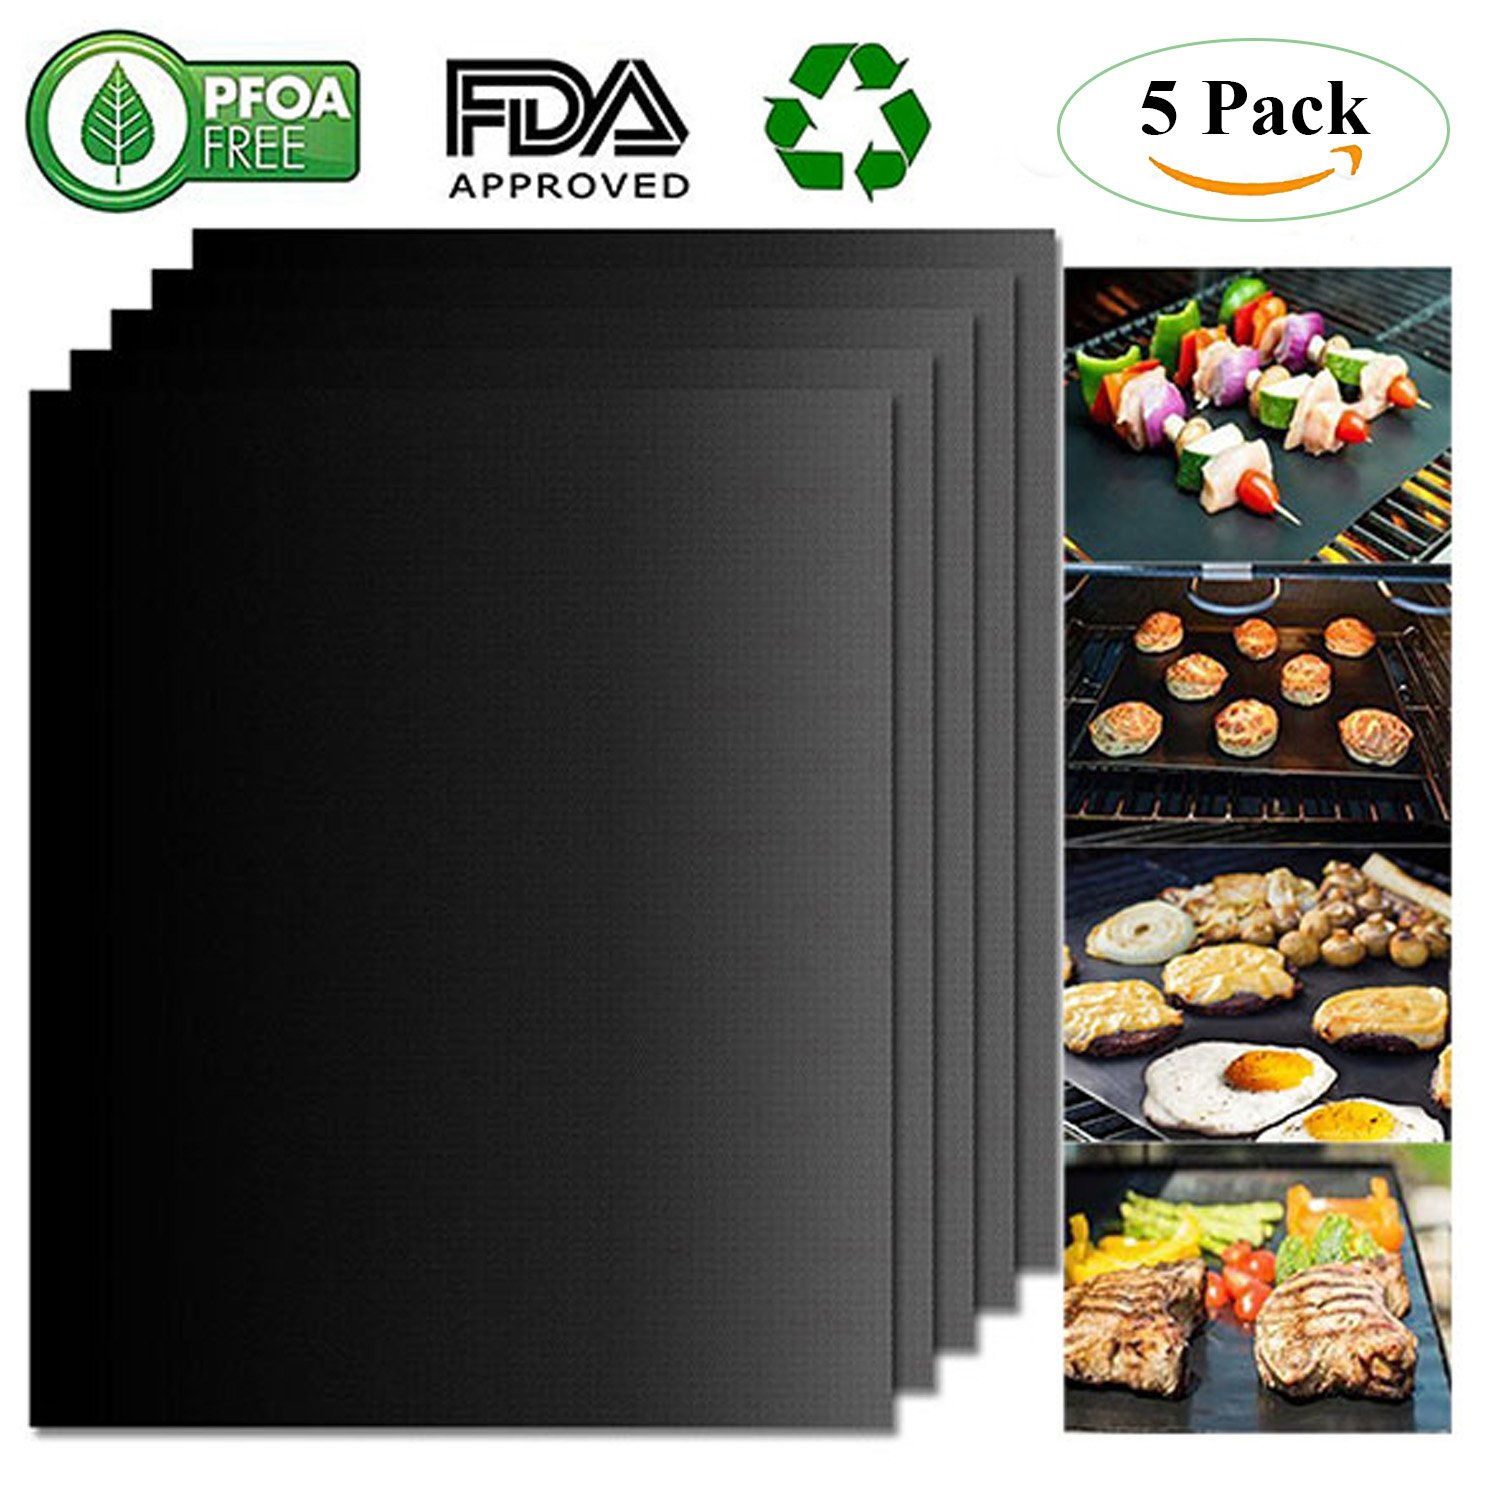 Belle Dura BBQ Grill Mats 100 Non Stick Set of 5 Barbecue Mats, FDA-Approved, PFOA Free, Heat Resistant Reusable Durable Baking Mats for Oven Gas Charcoal Electric Grill